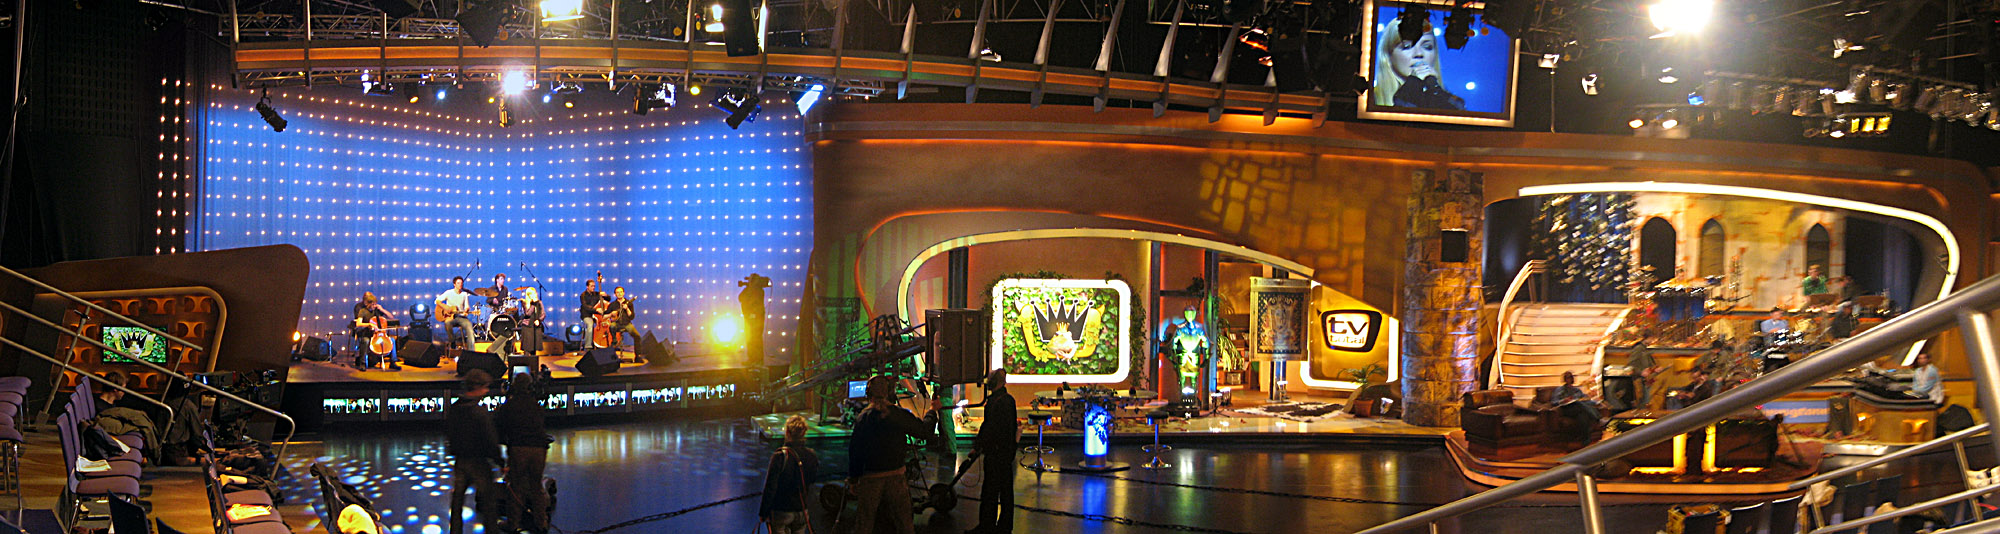 Tv Total Studio